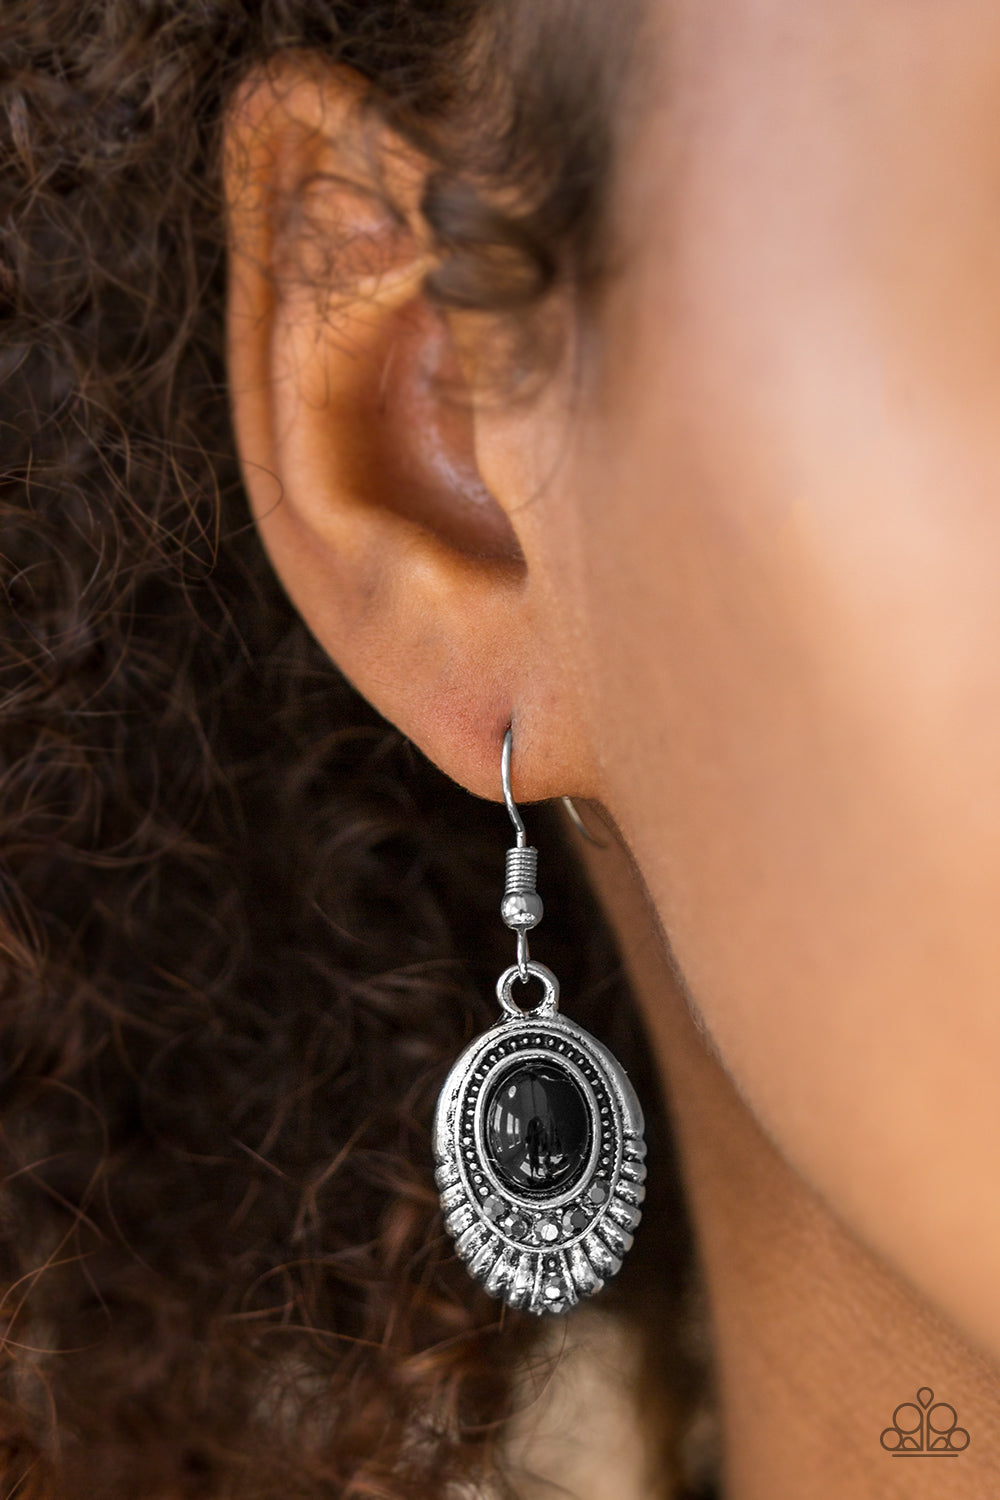 A shiny black bead is pressed into the center of an ornate silver frame. Glittery hematite rhinestones are sprinkled along the textured frame, adding a refined shimmer to the seasonal palette. Earring attaches to a standard fishhook fitting.  Sold as one pair of earrings.  Always nickel and lead free.